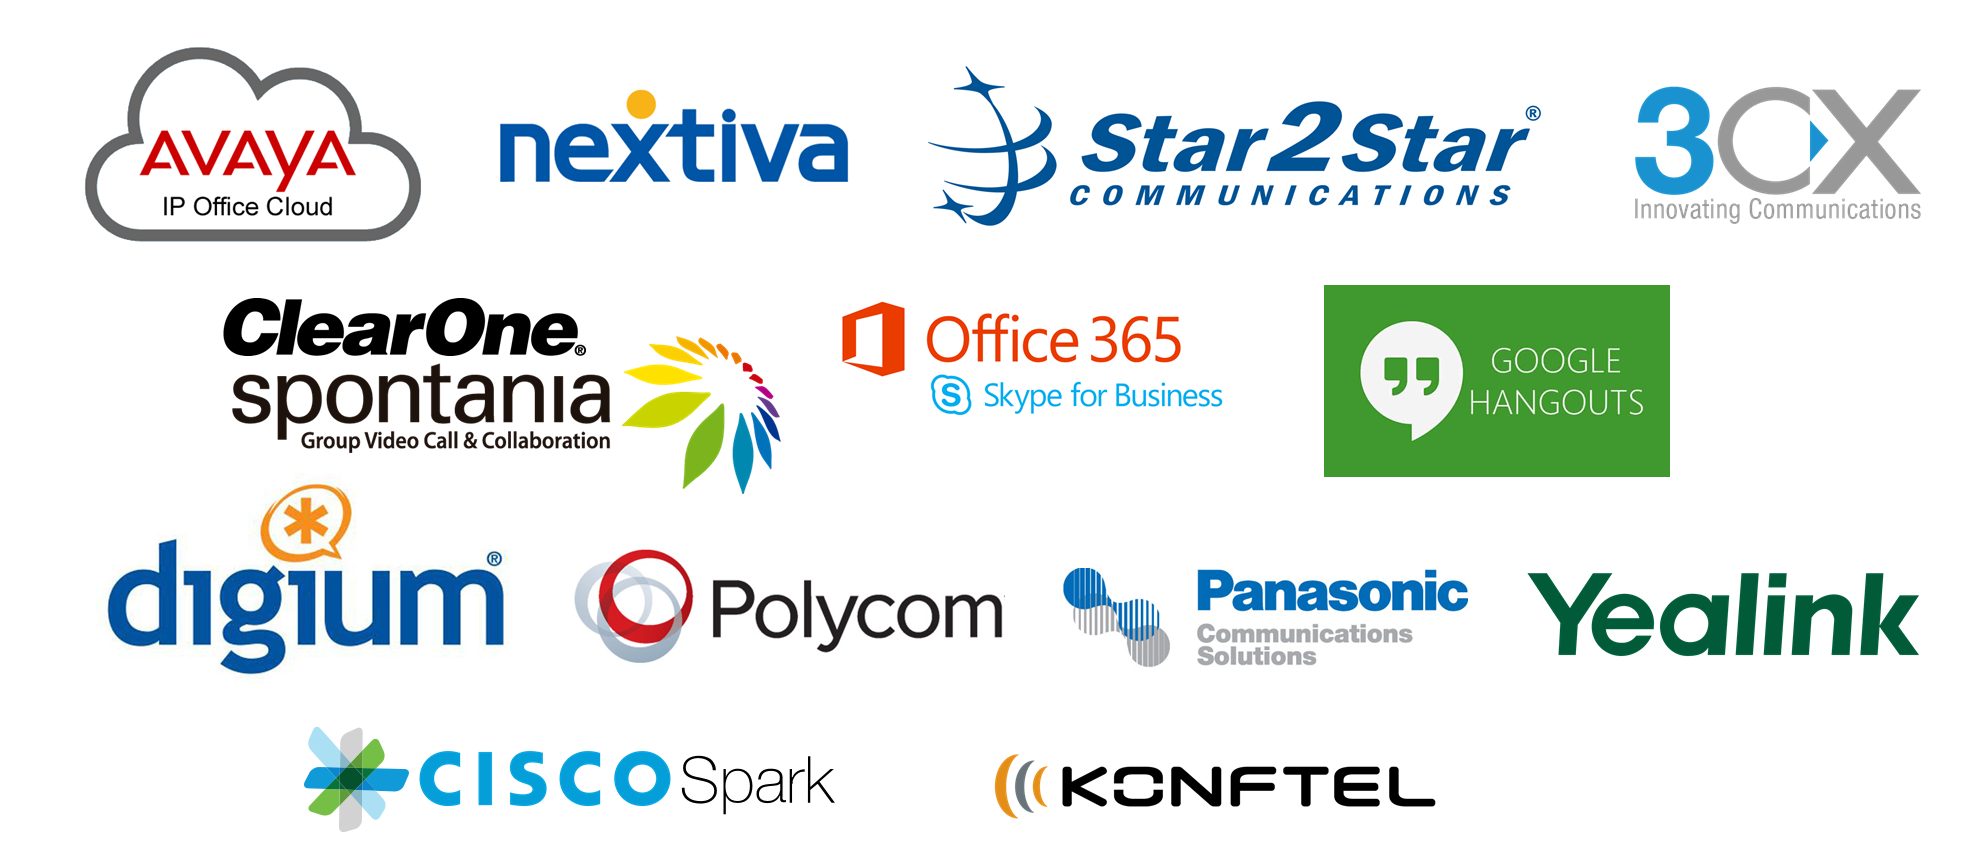 XS Cloud Voice Solutions - Avaya, Nextiva, Star2Star, 3CX, ClearOne, Office 365 Skype, Google Hangouts, Digium, Polycom, Panasonic, Yealink, Cisco, Konftel